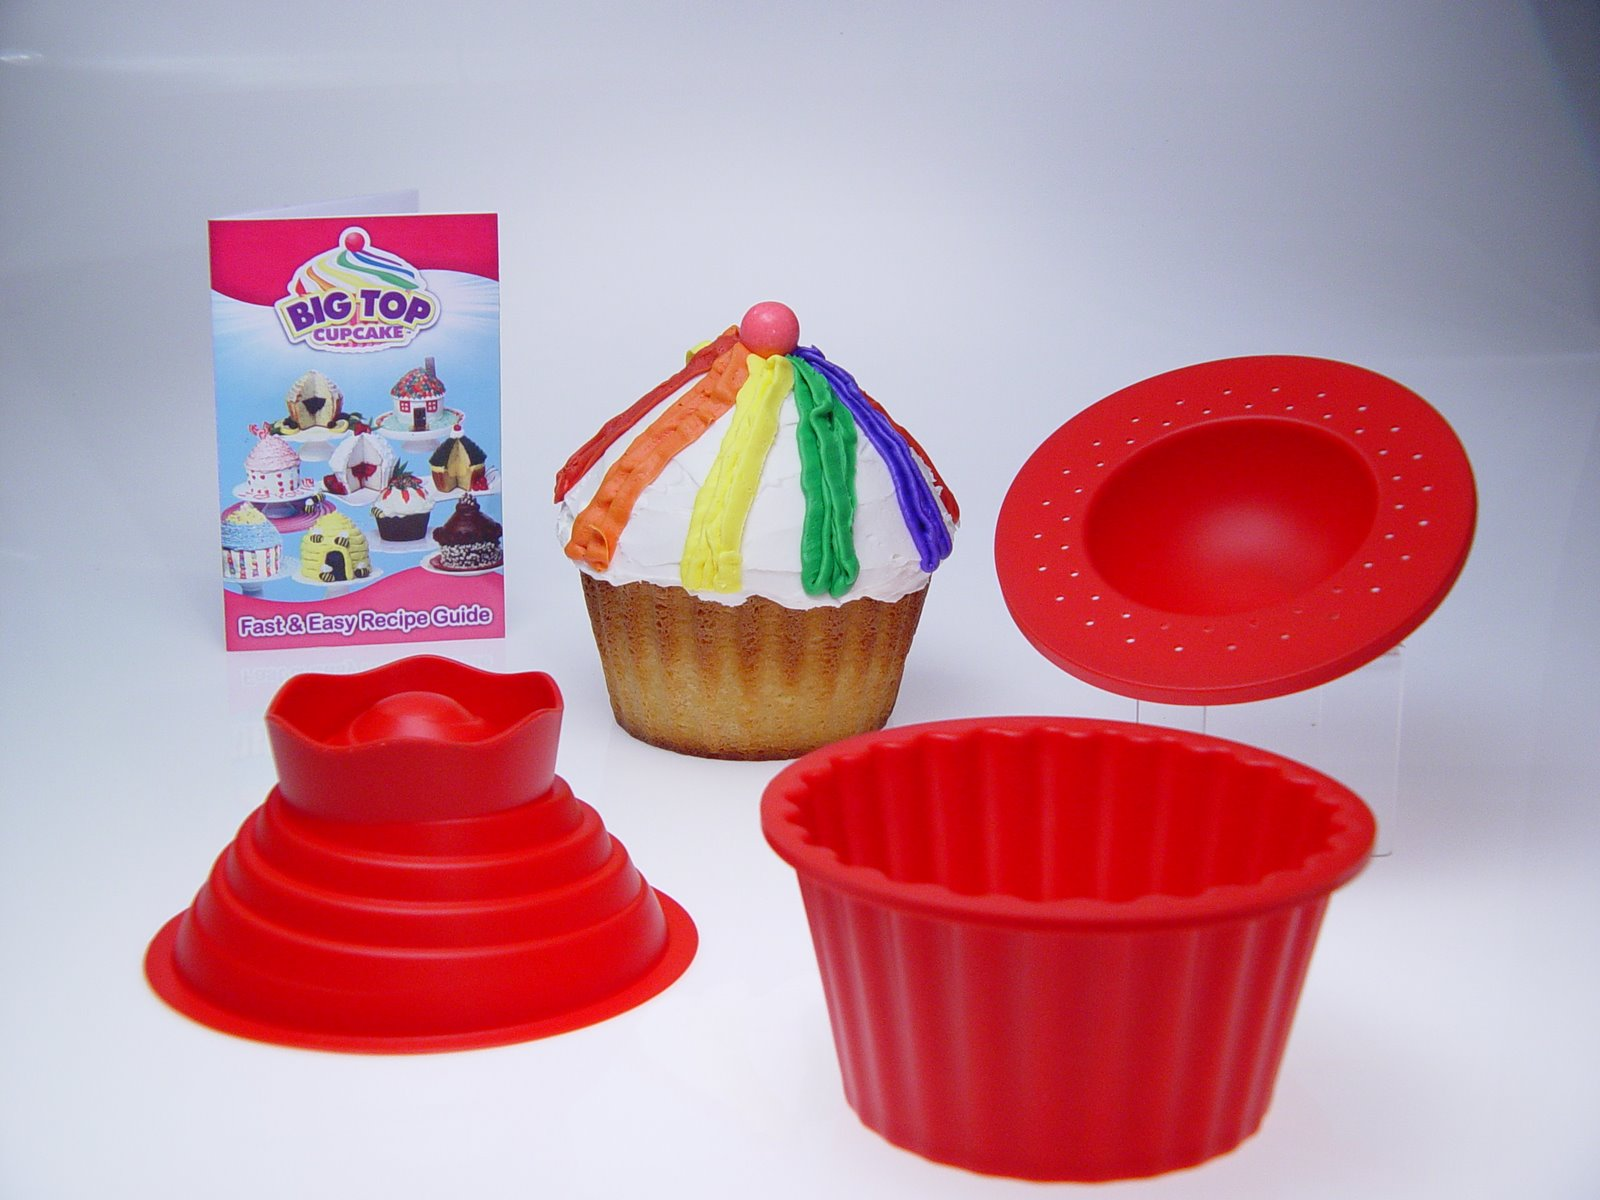 Big Cupcake Images : ENDED~~Calling All Bakers! Big Top Cupcake Giveaway Our ...